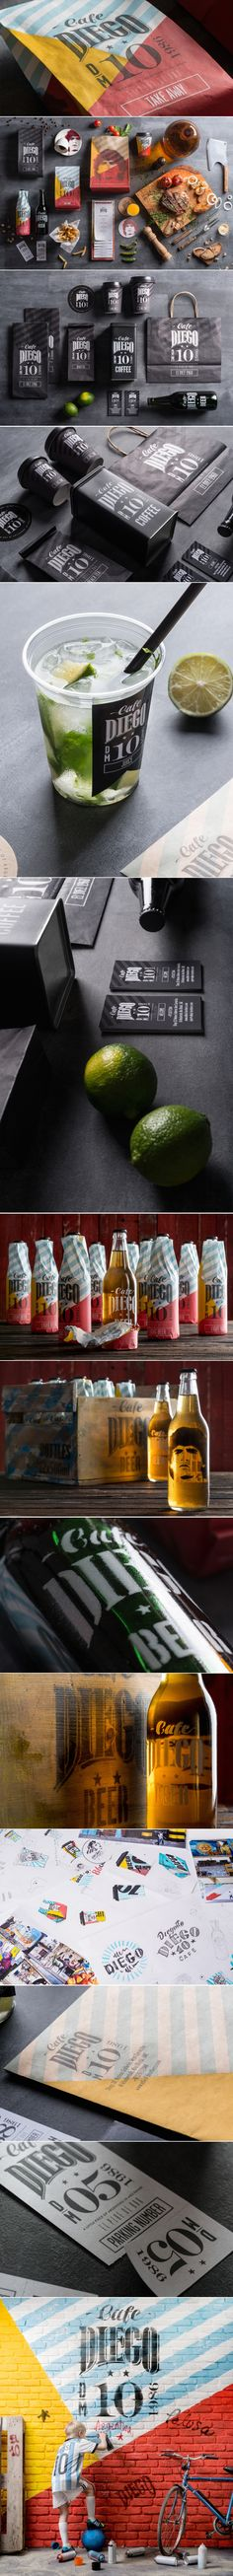 Cafe Diego — The Dieline | Packaging & Branding Design & Innovation News